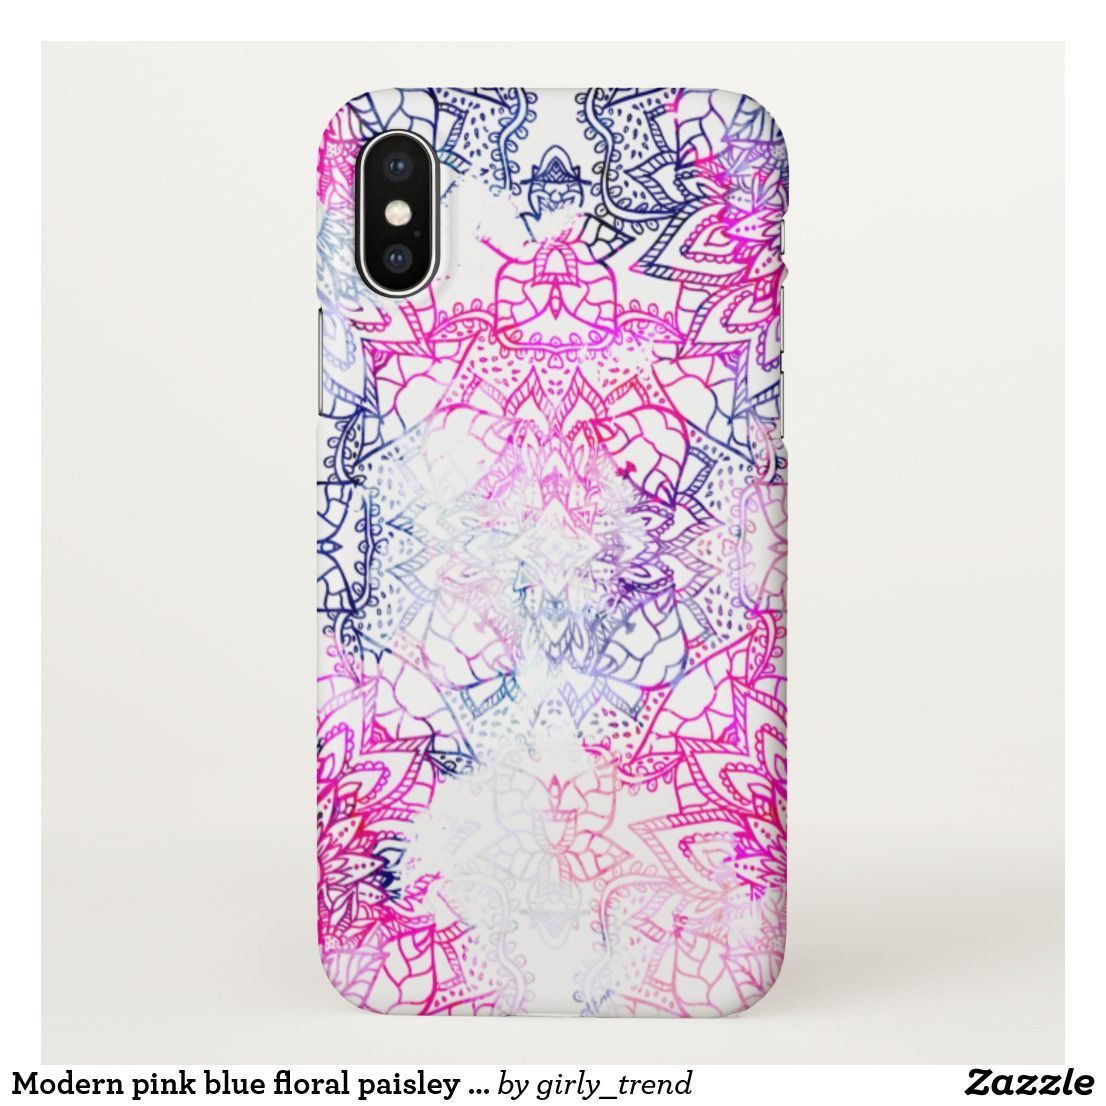 2804a9caf6b Modern pink blue floral paisley custom background iPhone x case  #iphonexcase,